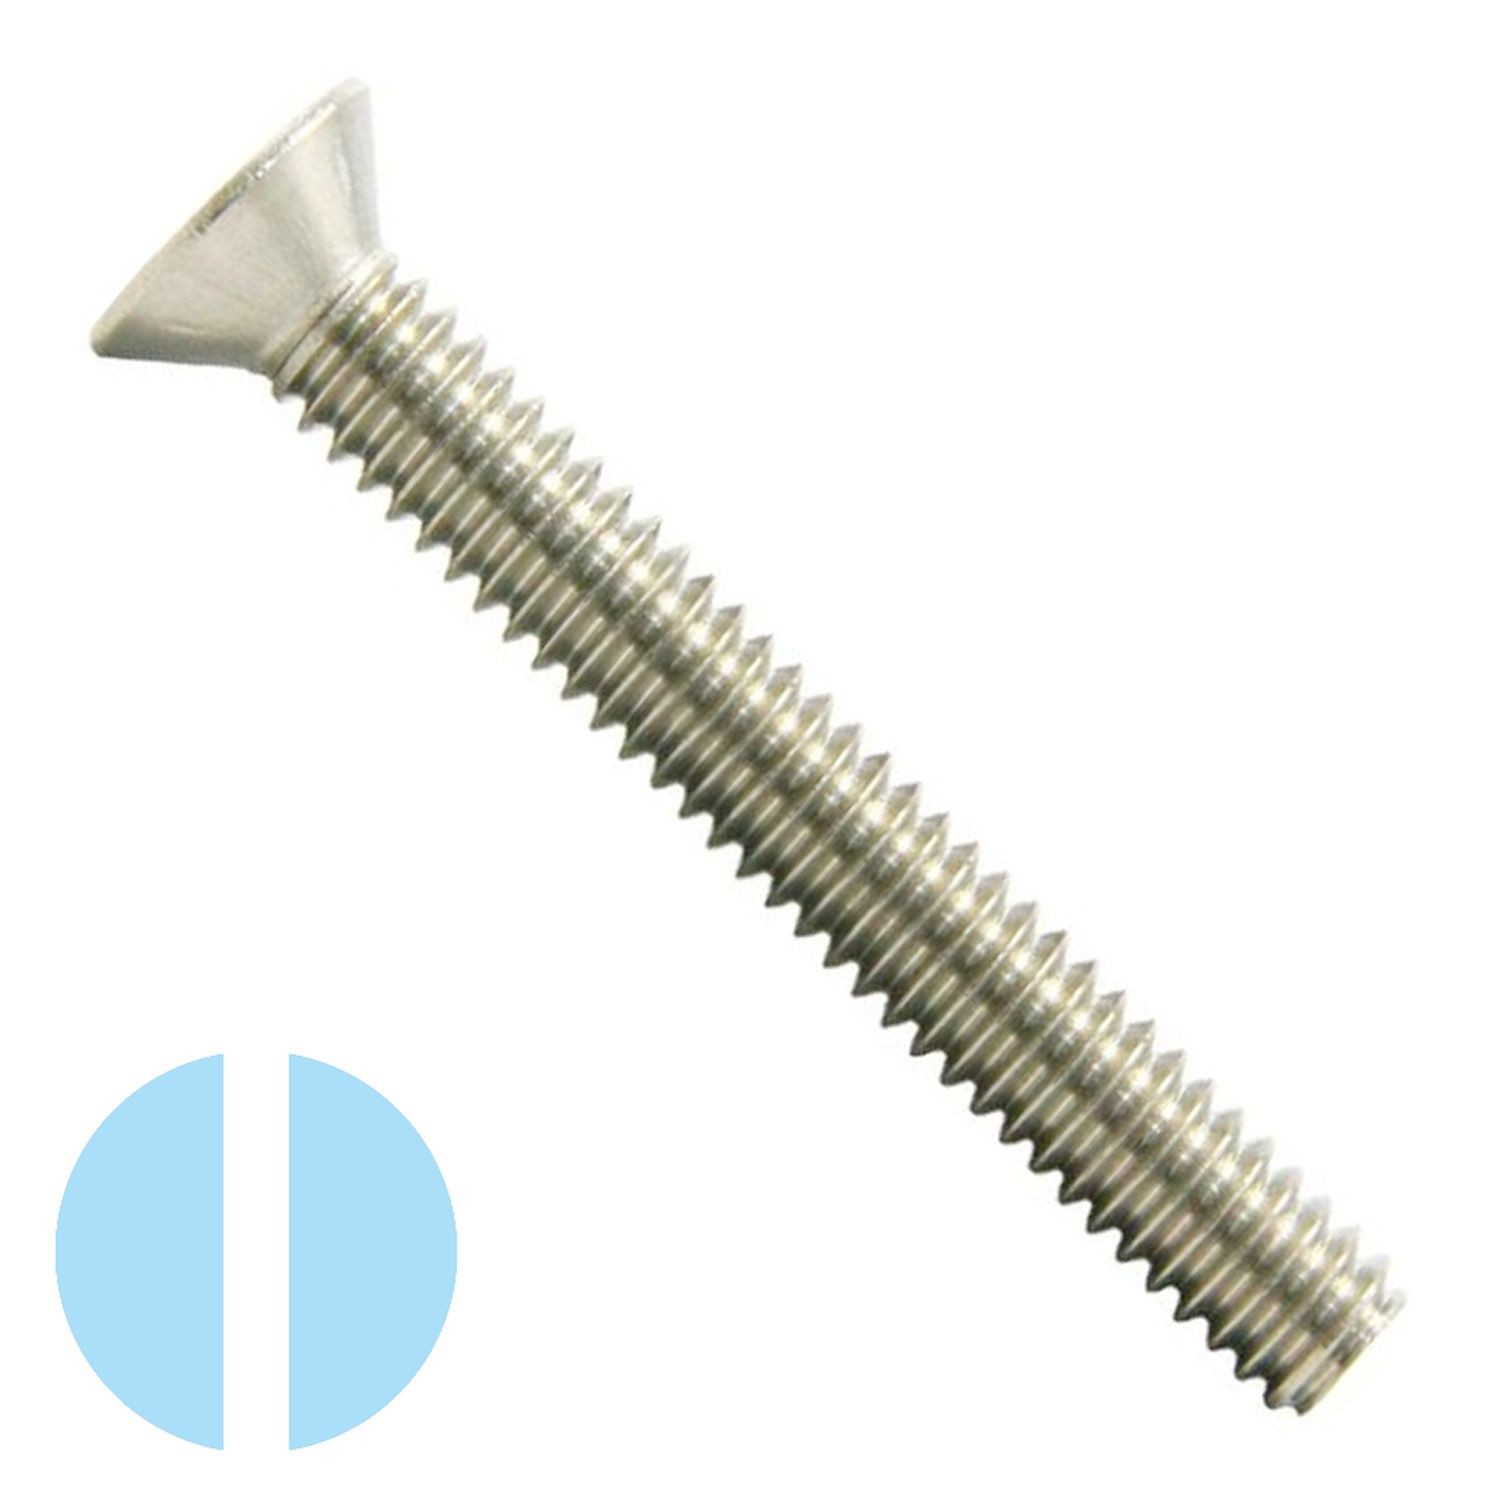 "#10-24 x 1-1/2"" Stainless Steel Slotted Flat Head Machine Screw 18-8"